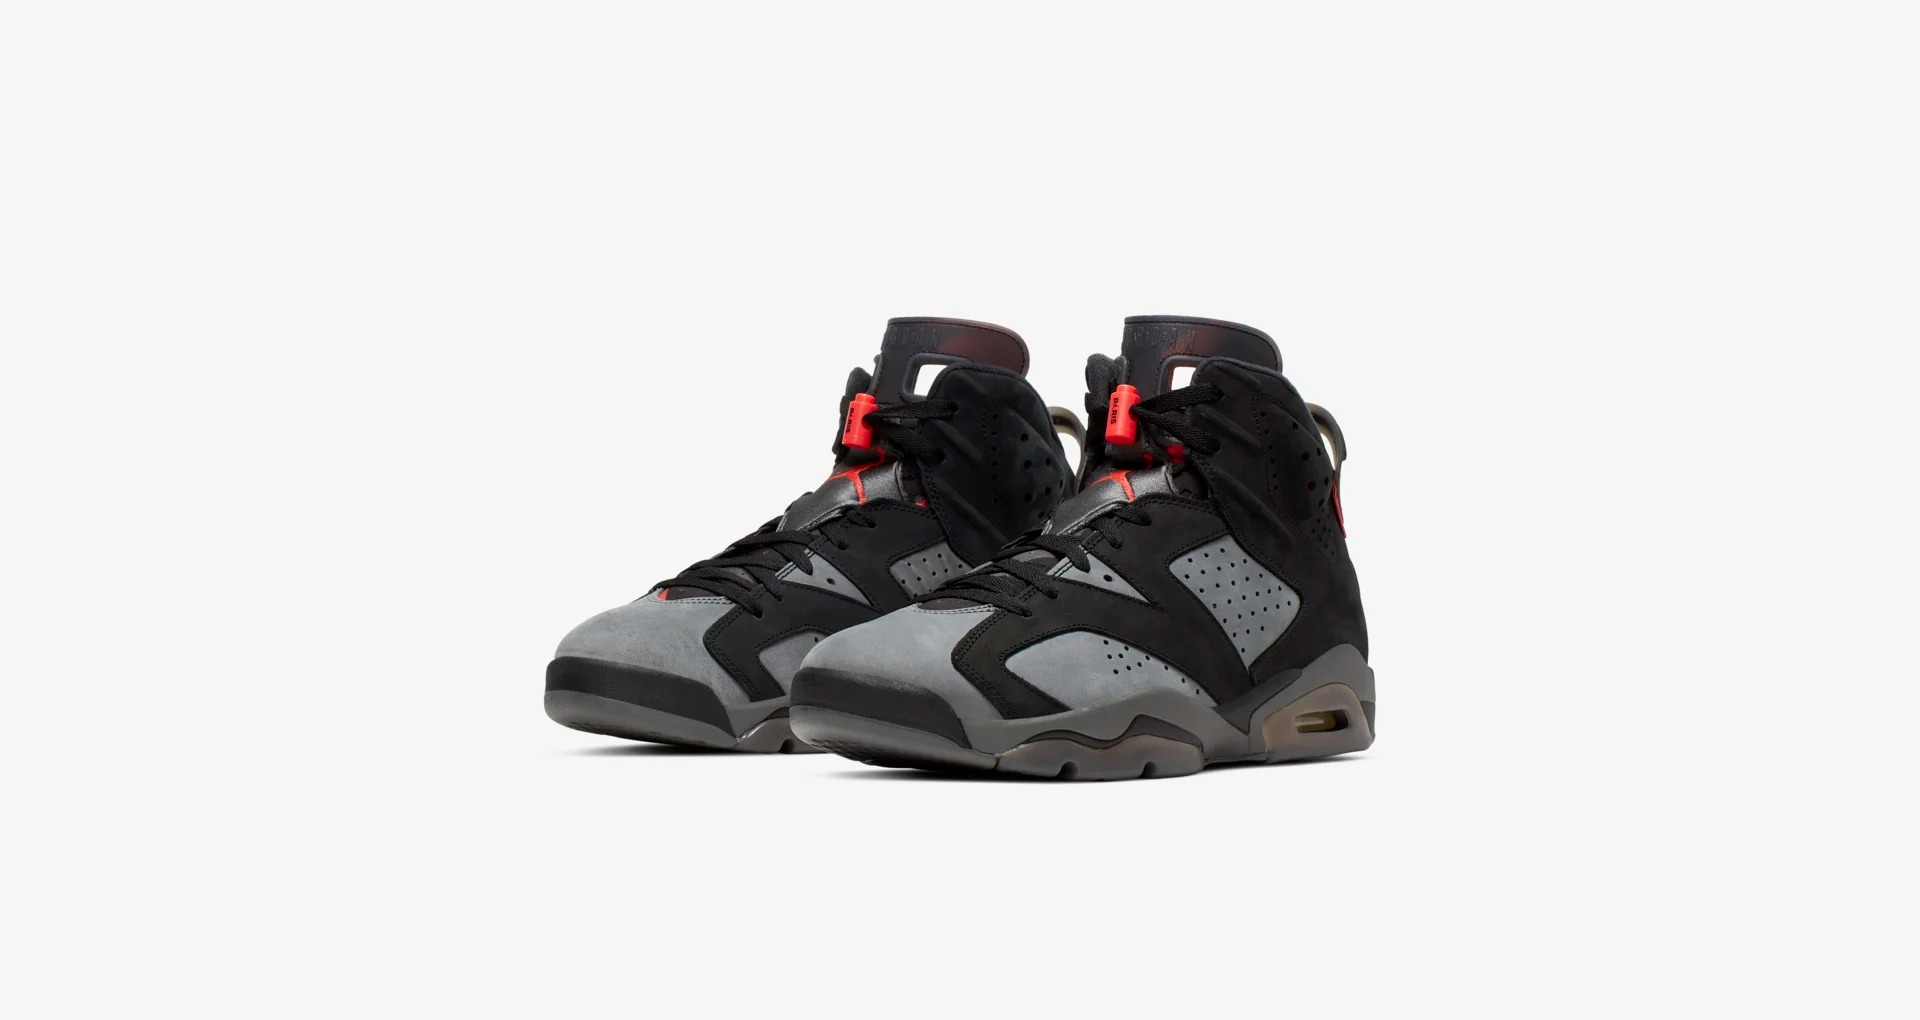 CK1229 001 PSG x Air Jordan 6 Retro 4